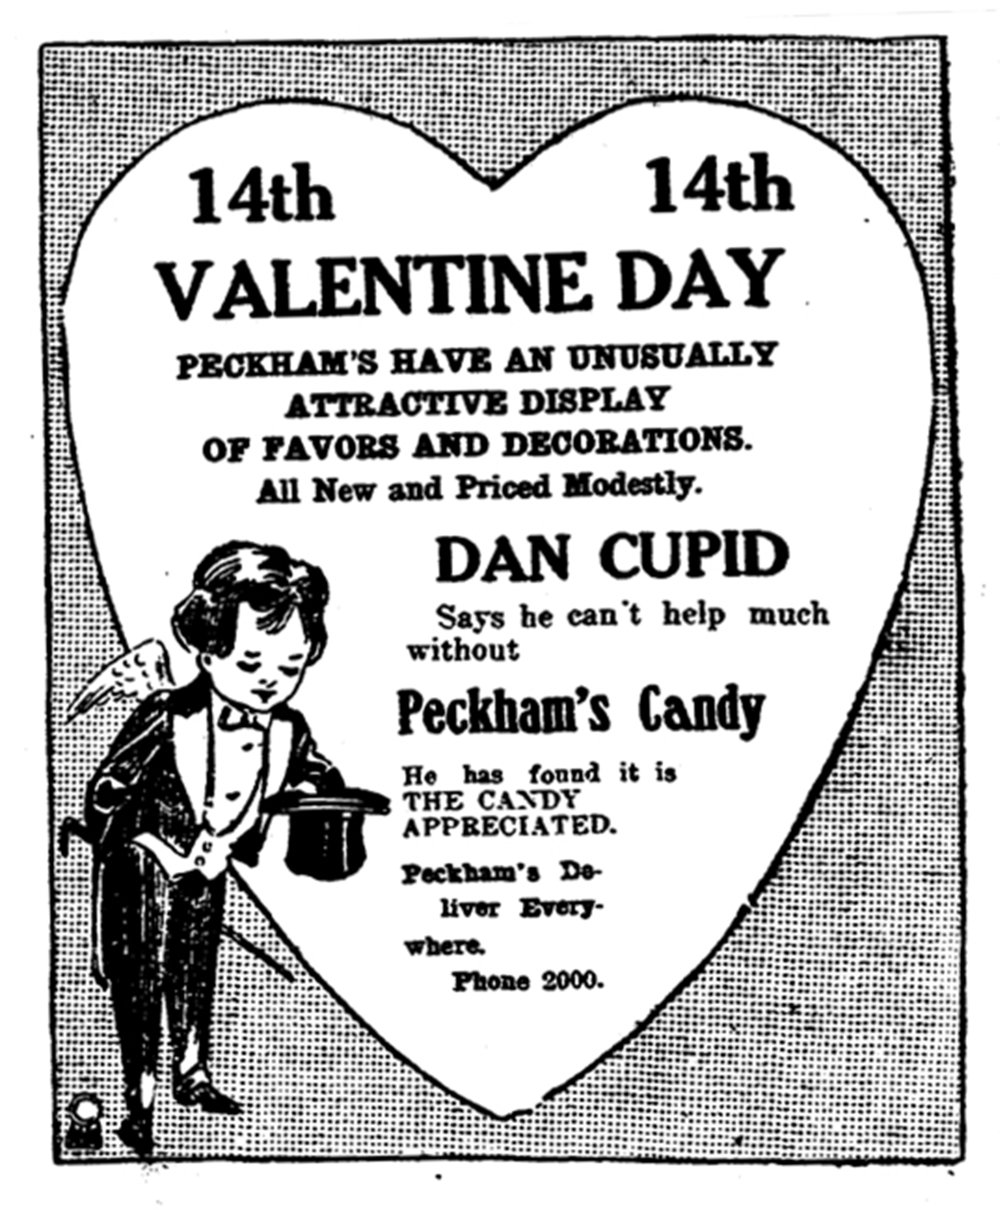 Dan Cupid can't do his thing without good candy, according to this ad in the Feb. 6, 1913, Arkansas Gazette. (Arkansas Democrat-Gazette)